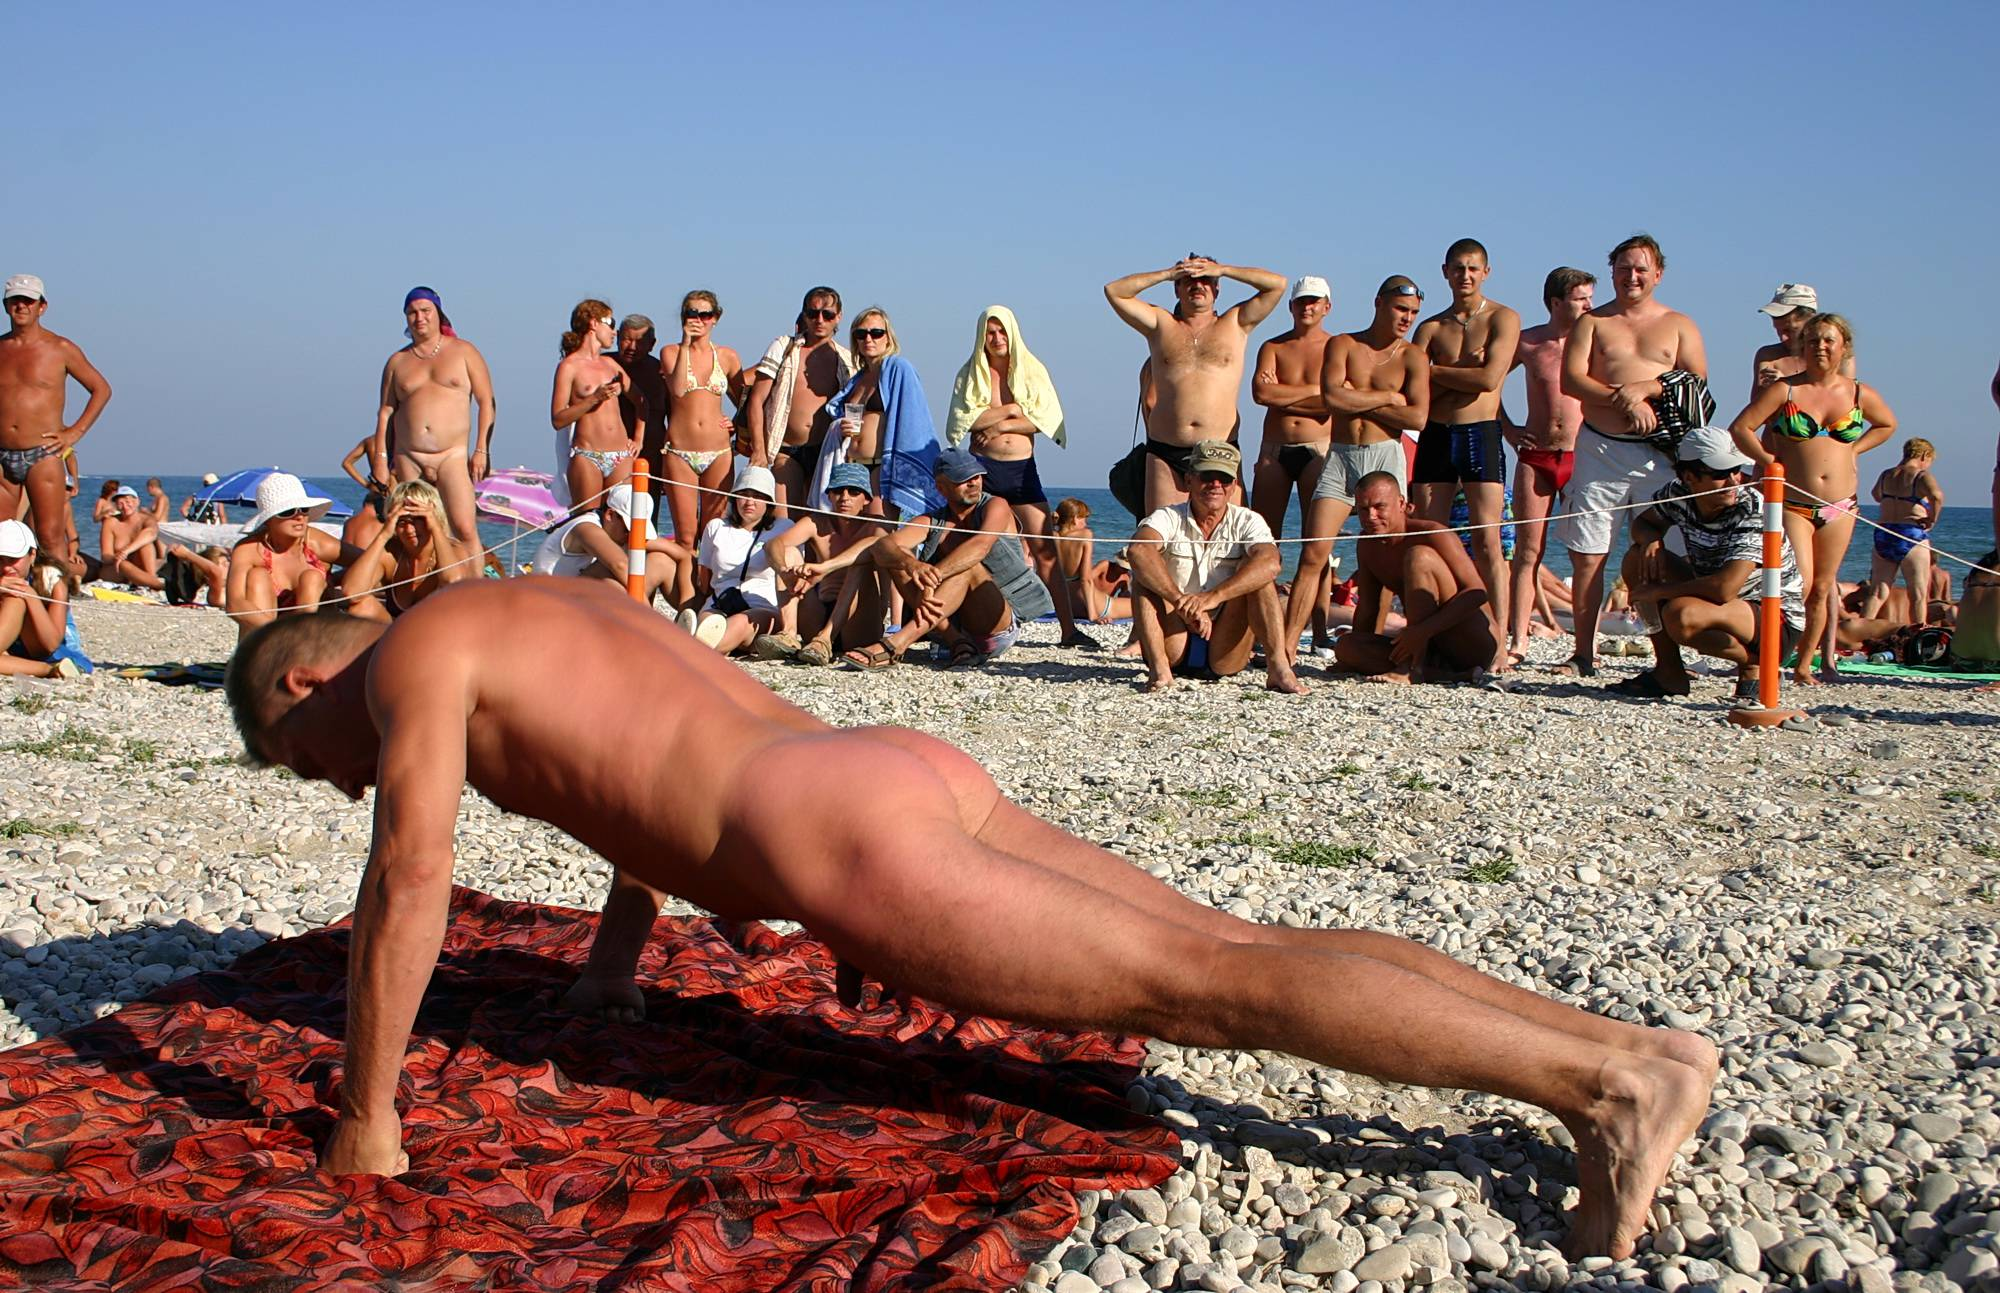 Purenudism Pics Muscle Man Competition - 1